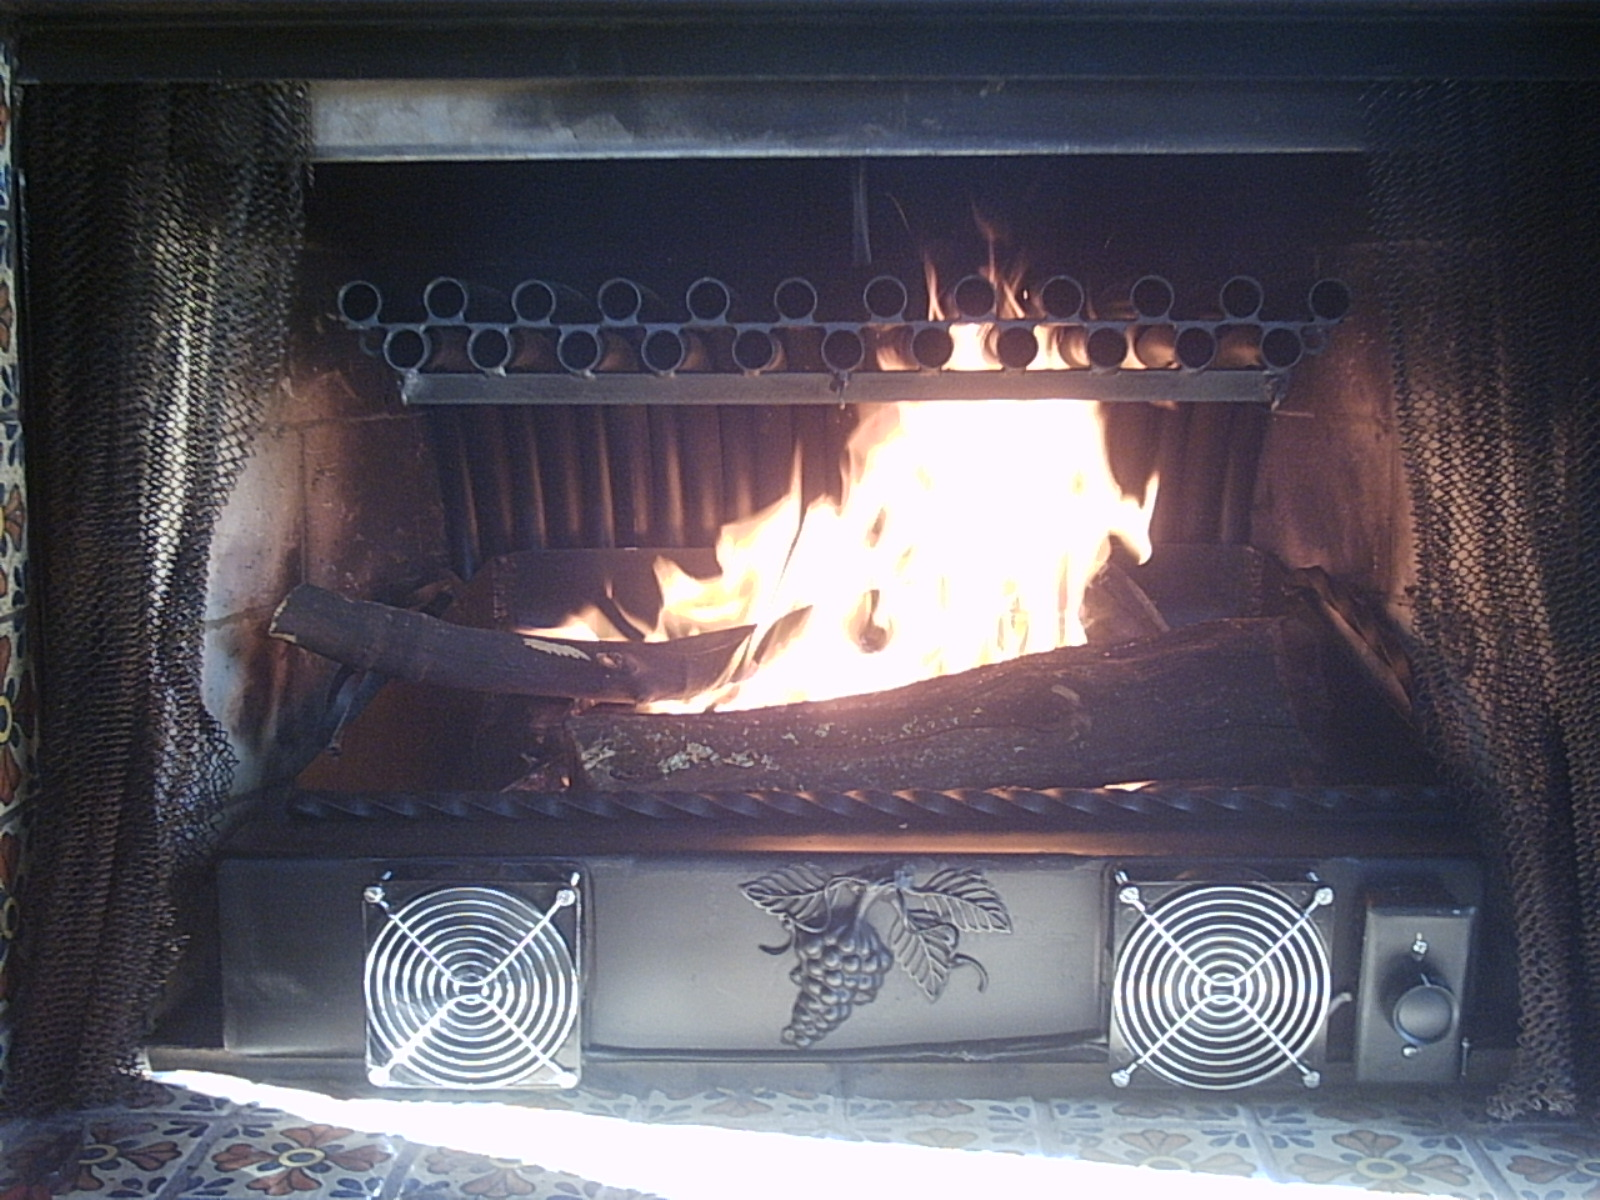 2 row grate heater with ash tray